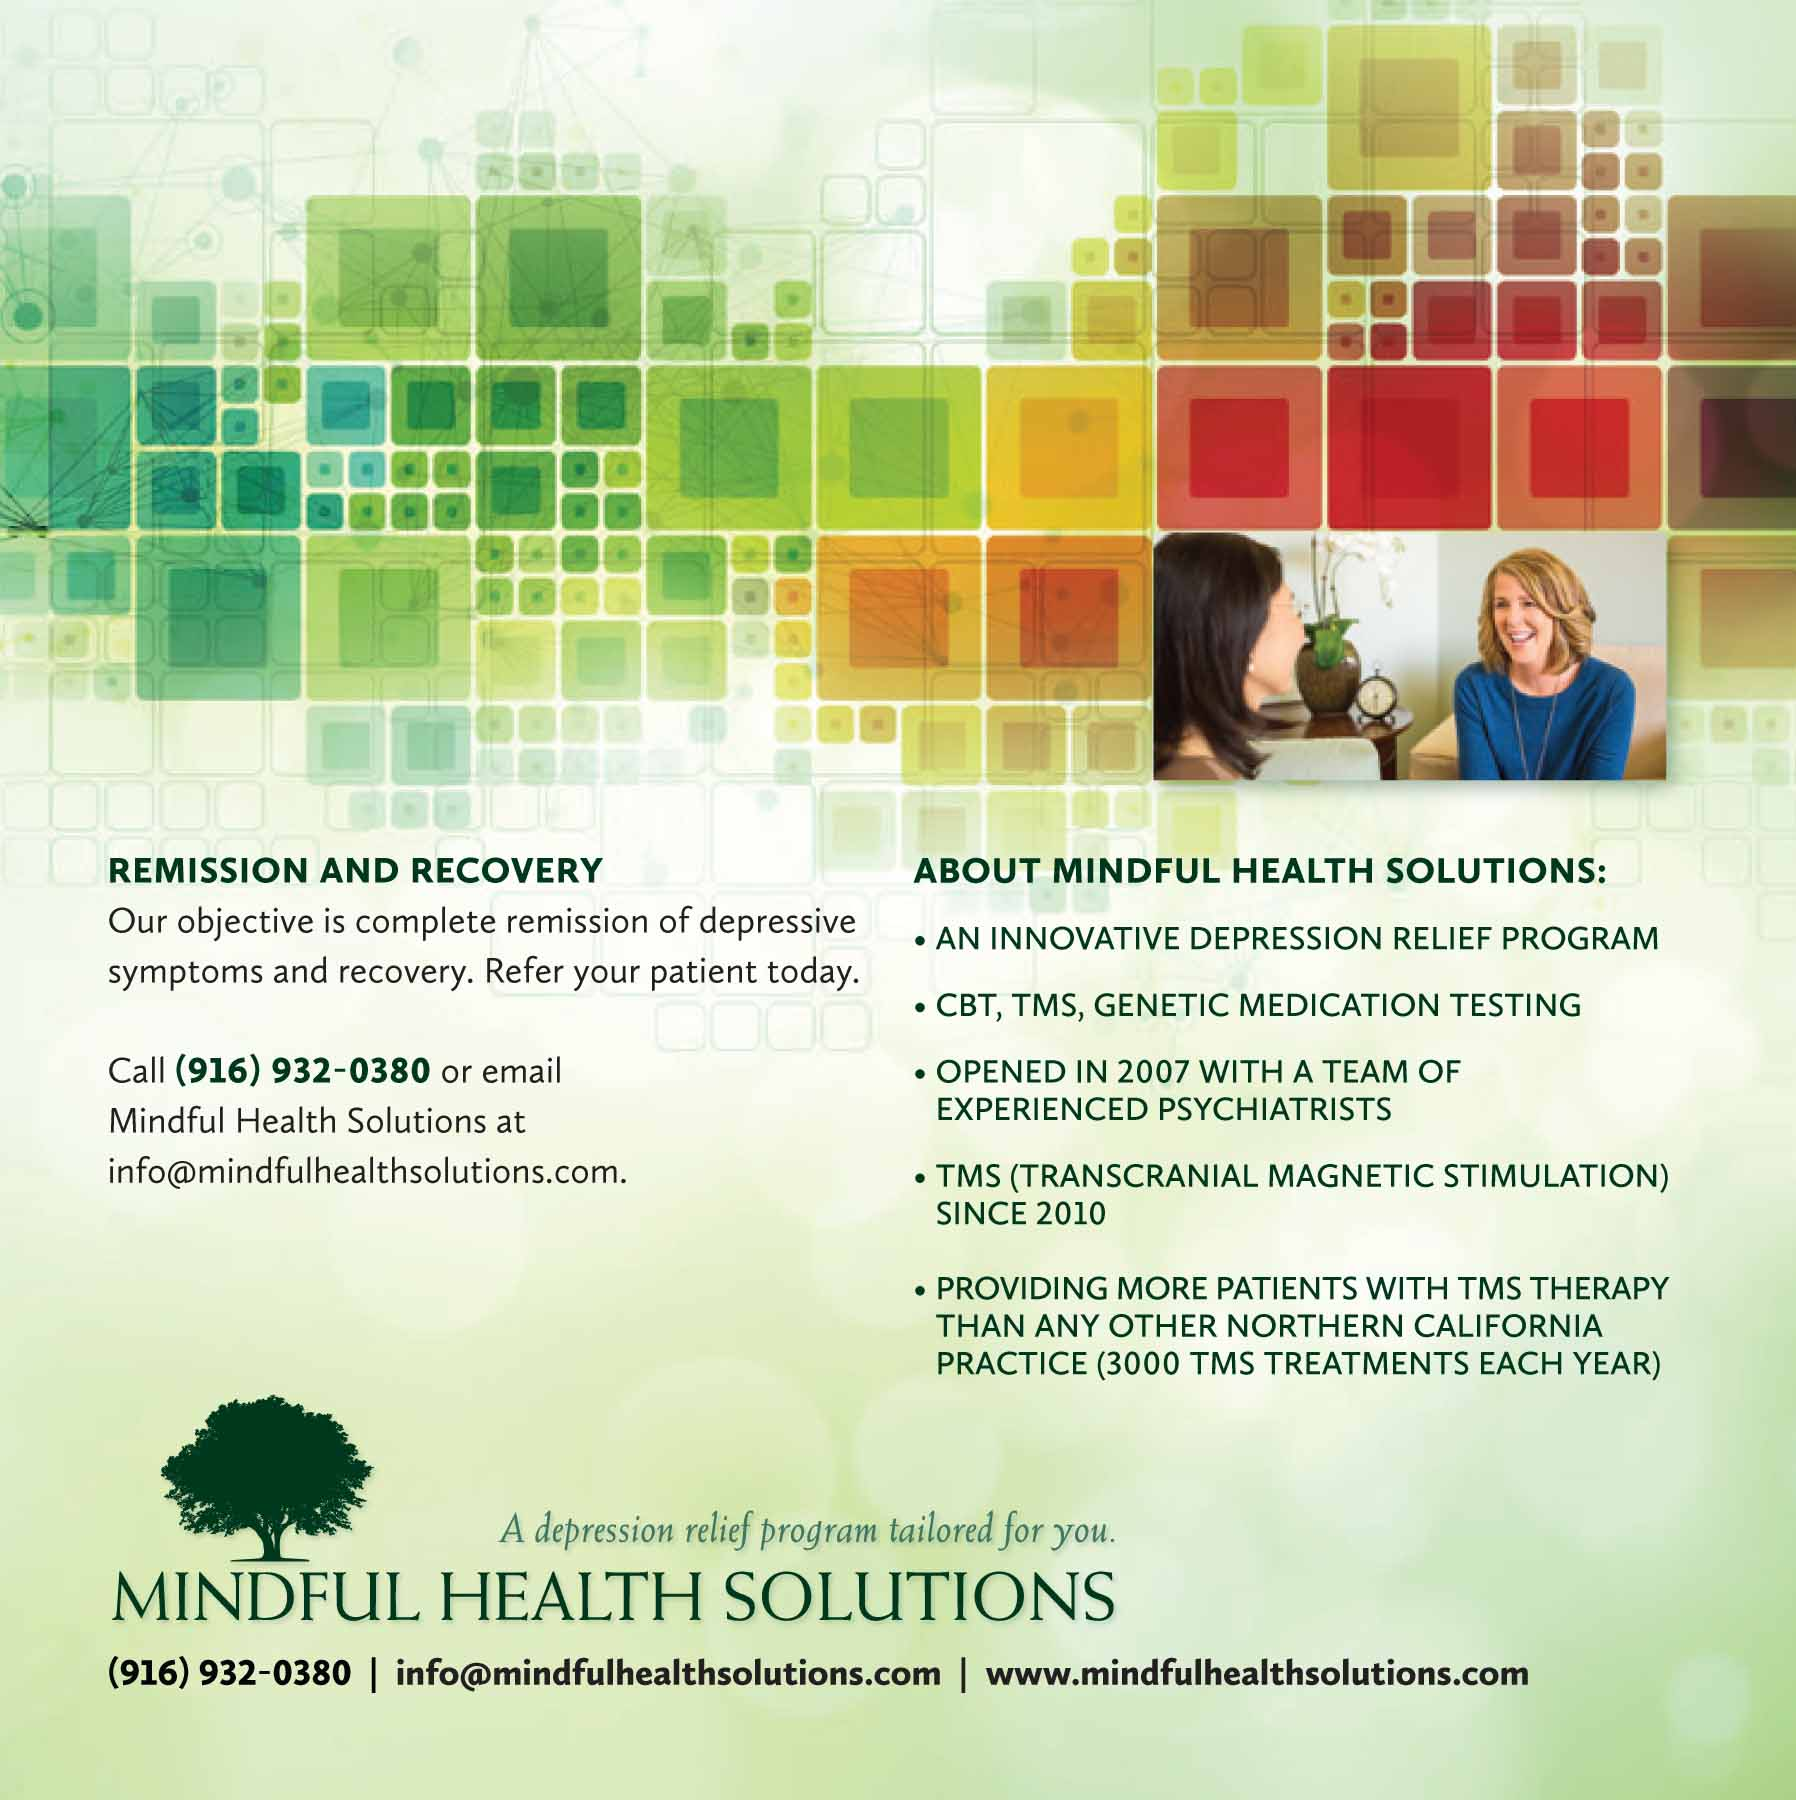 Client – Mindful Health Solutions